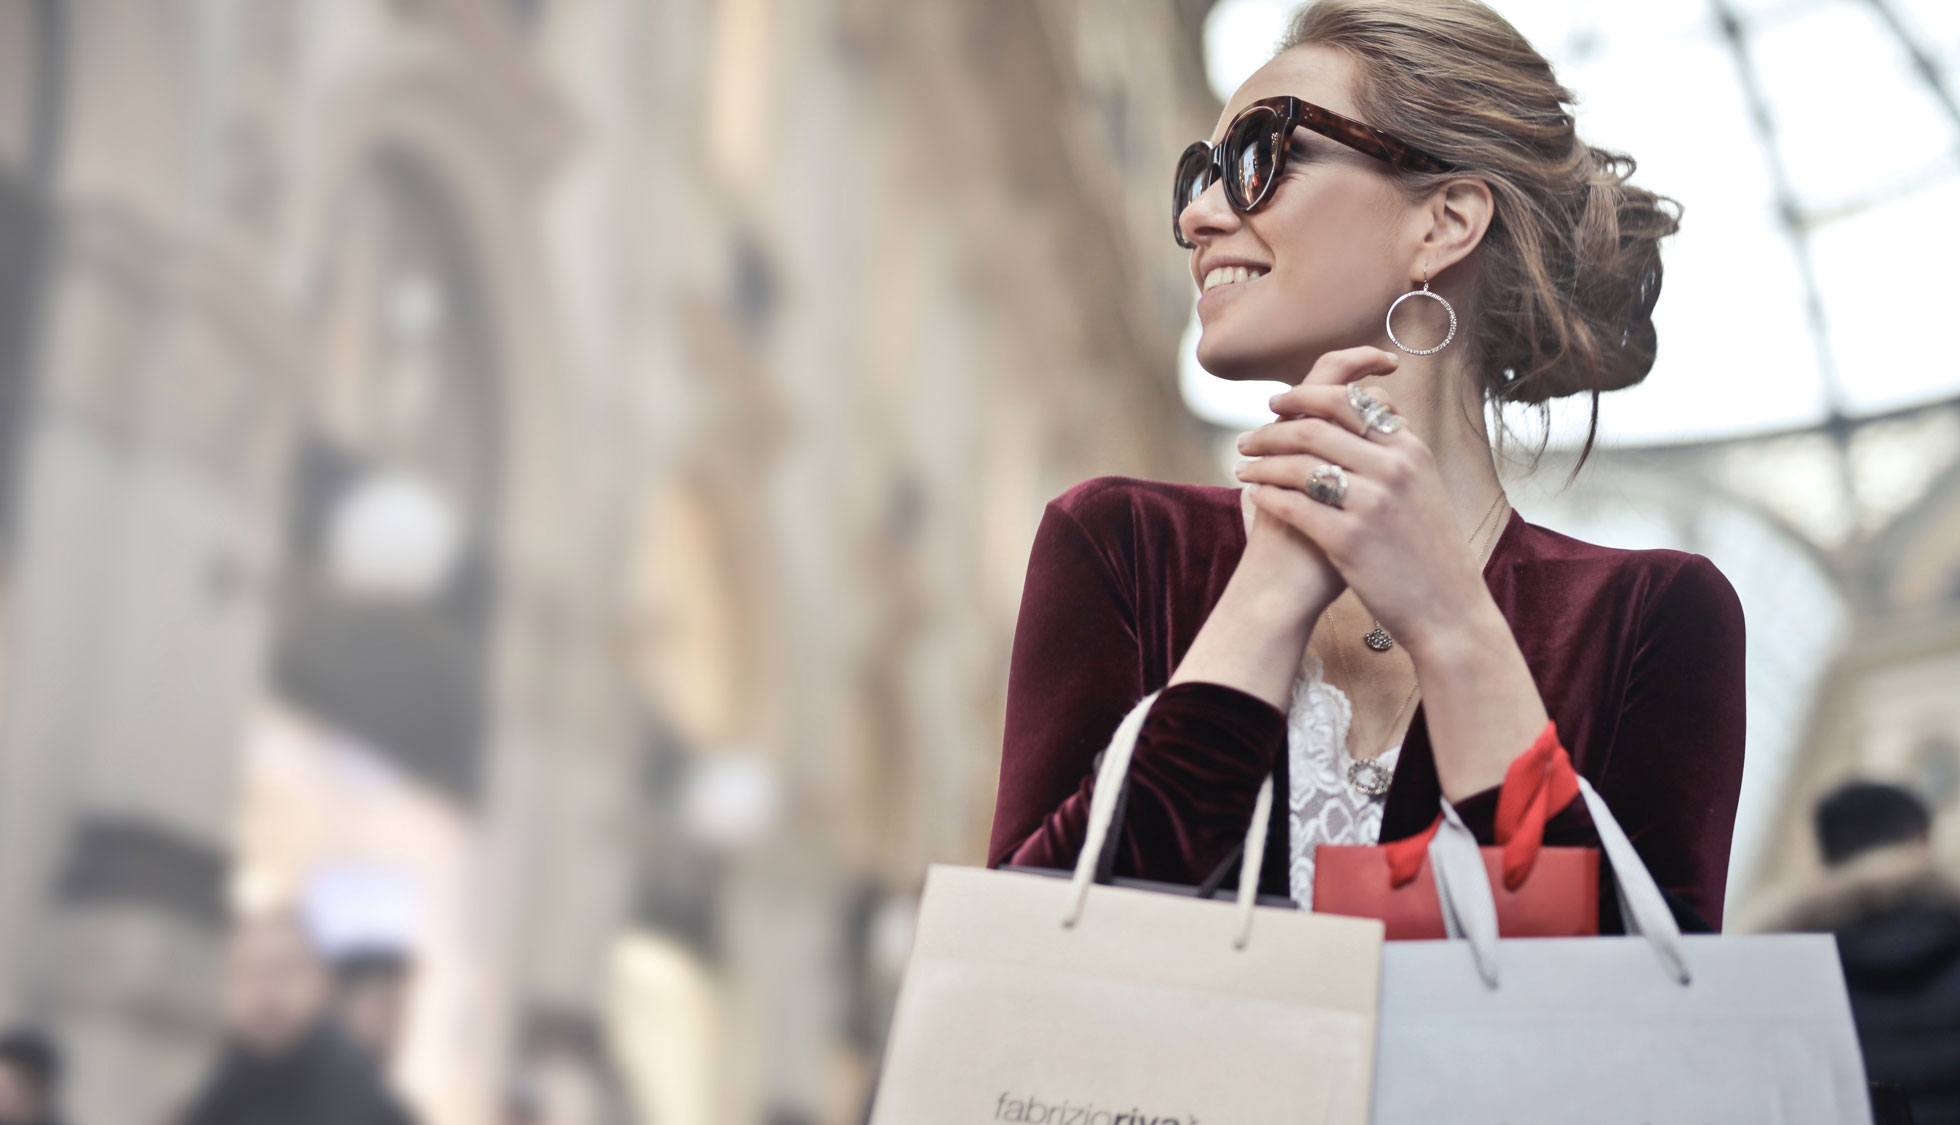 Stay at Hotel Mediolanum and go shopping at Scalo Milano Outlet!